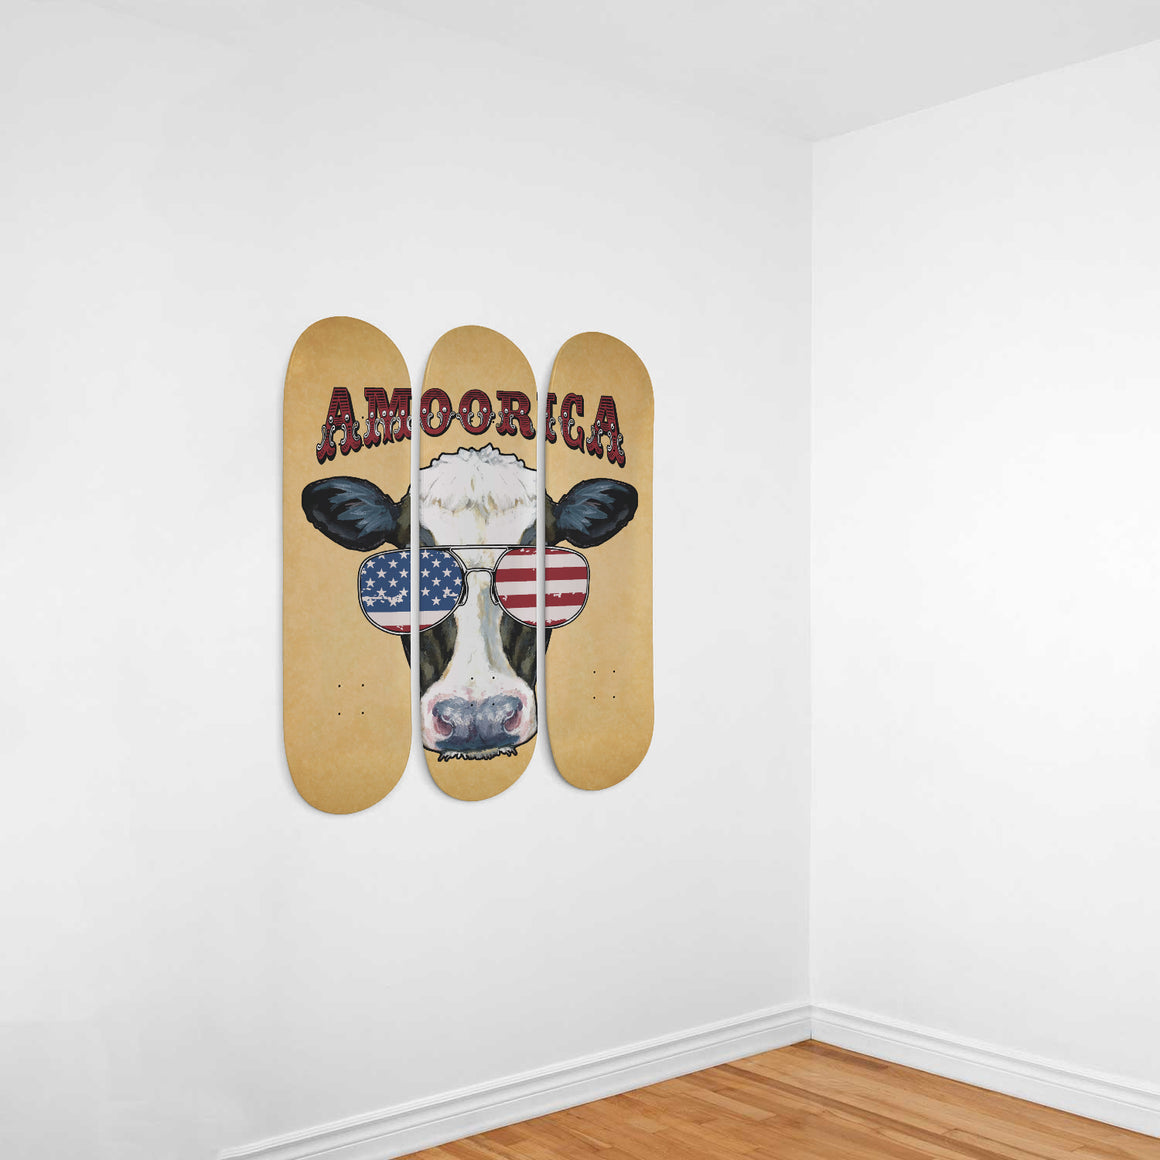 Amoorica 3 Skateboard Wall Art